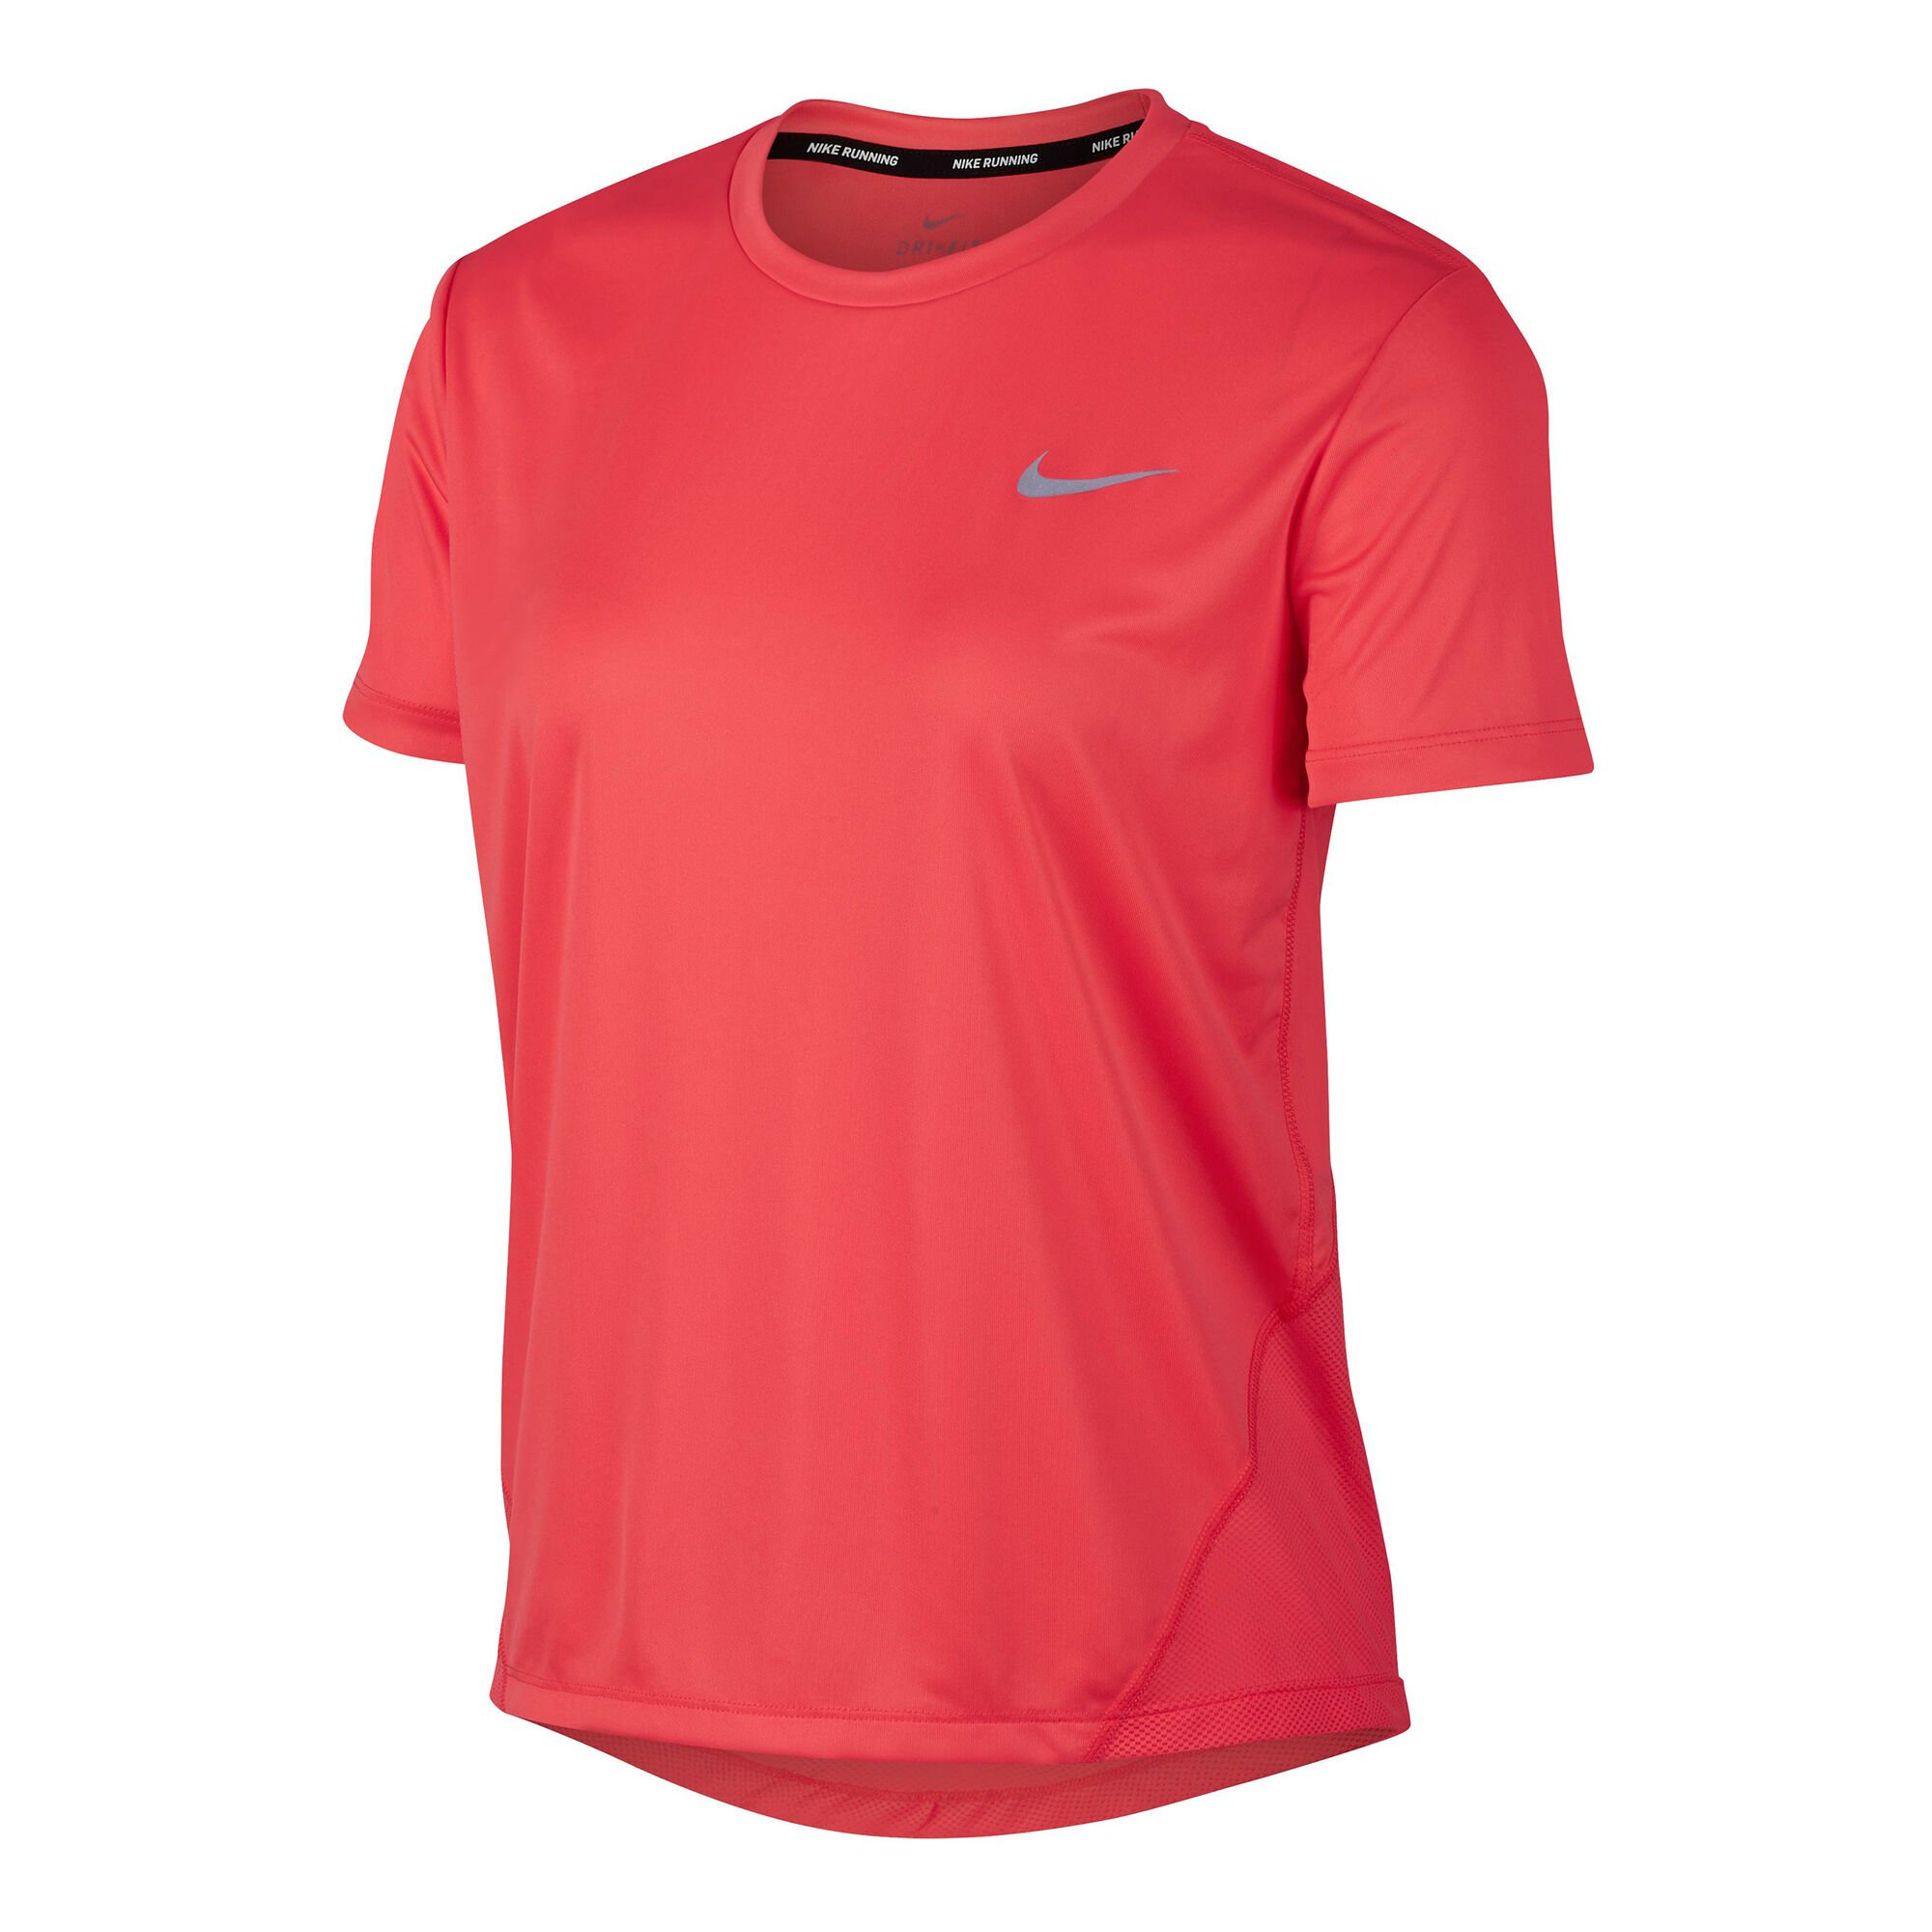 f991ecb9207e6 Nike Running T Shirt Collection